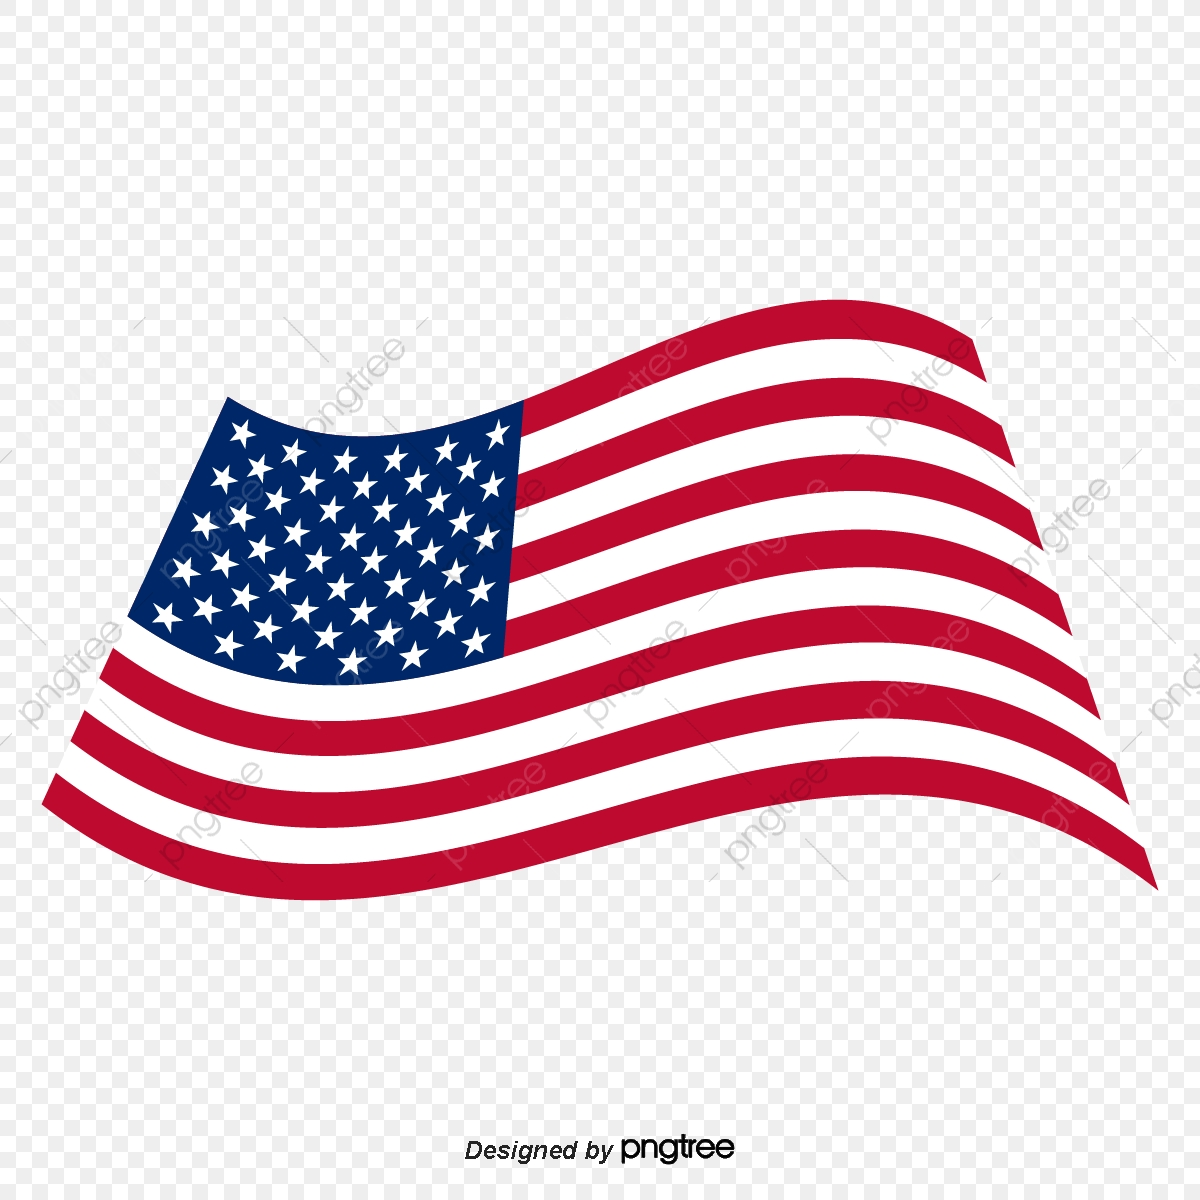 American Flag Png Vector Psd And Clipart With Transparent Background For Free Download Pngtree